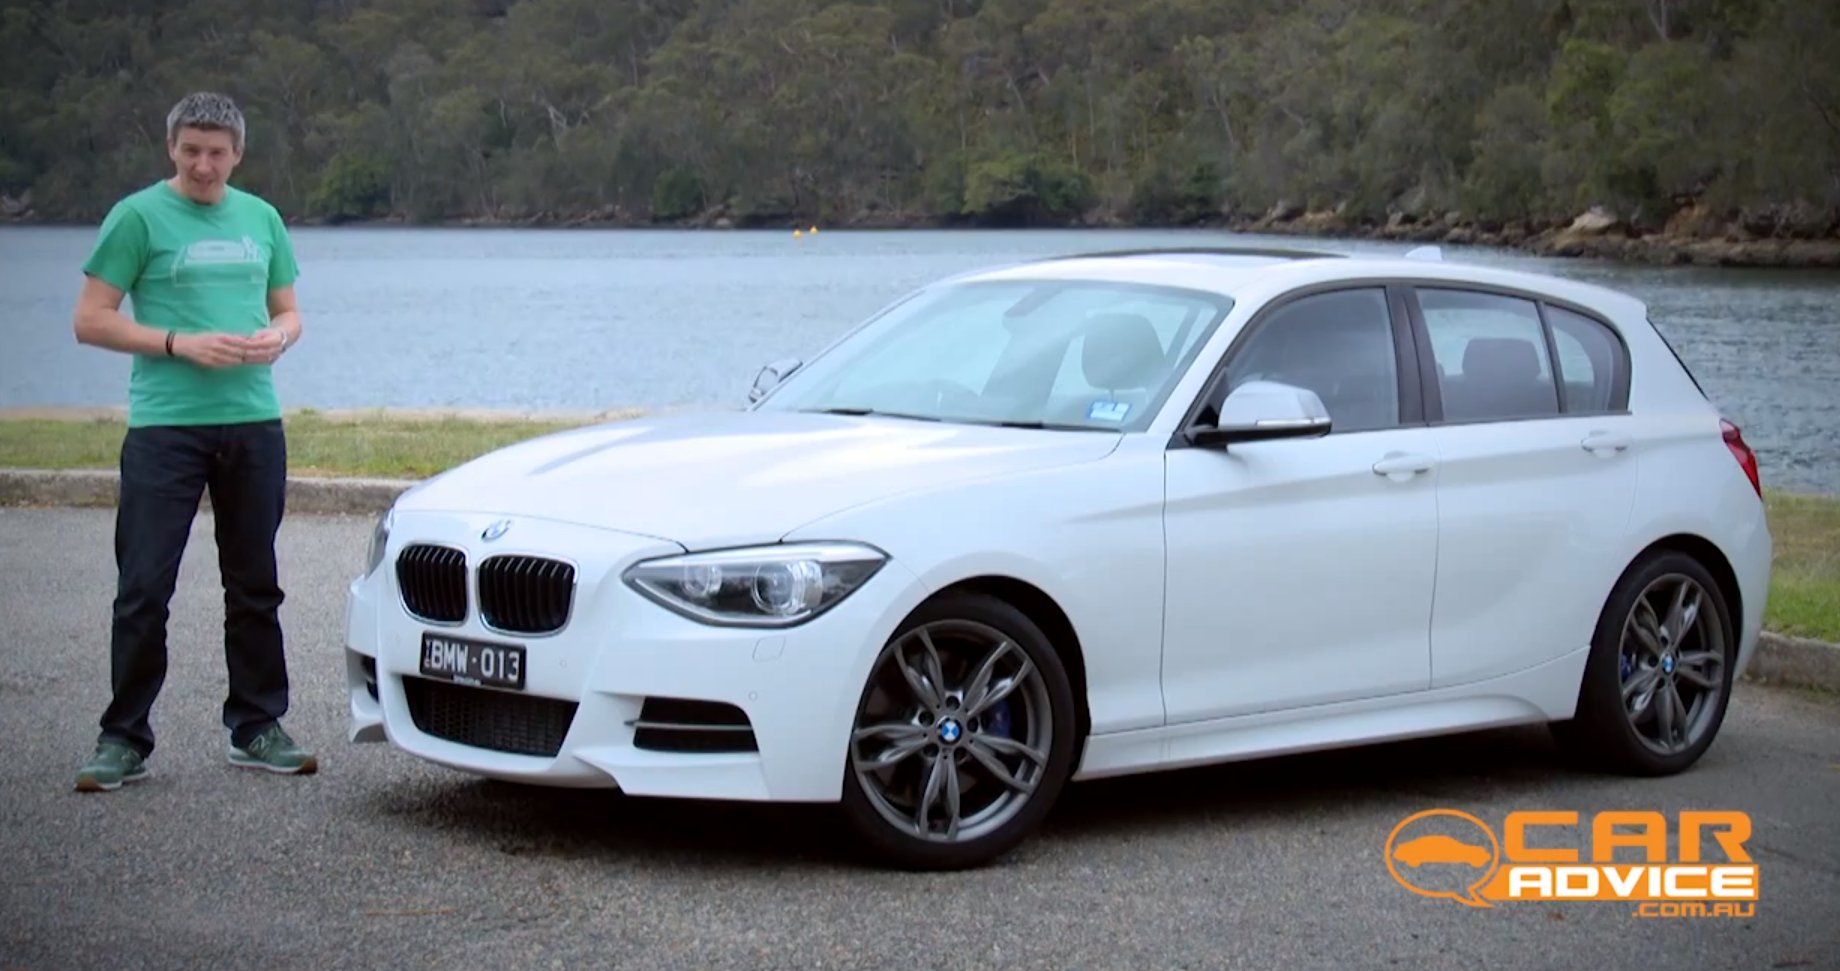 Bmw f20 m135i review by car advice autoevolution bmw f20 m135i review by car advice cheapraybanclubmaster